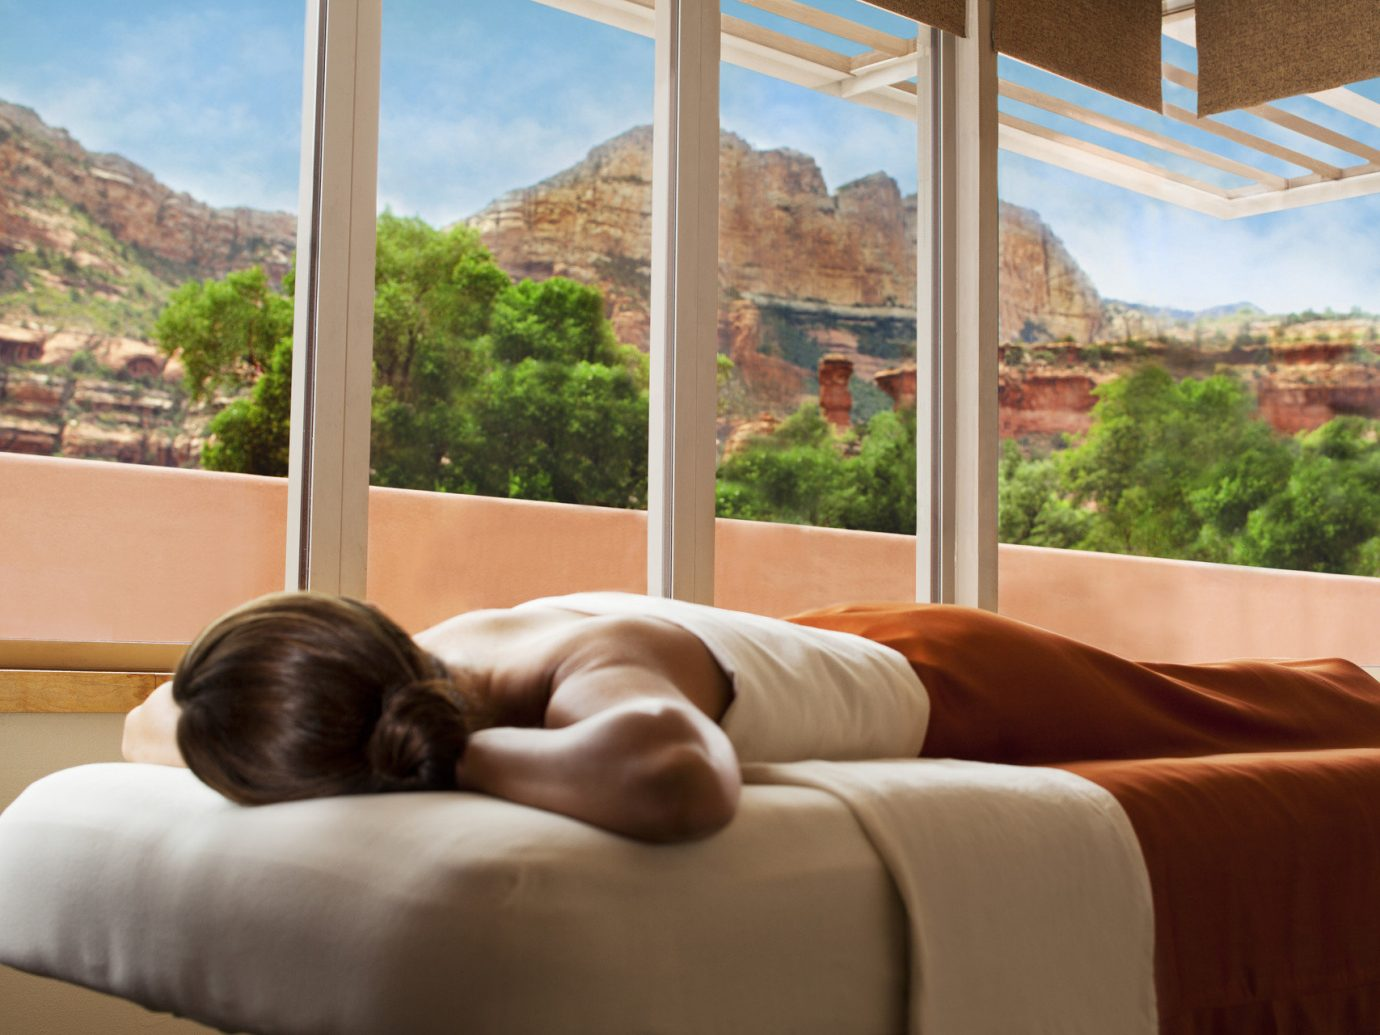 Greenery Hotels Jetsetter Guides Luxury Travel massage Mountains people relaxation remote retreat Rocks Spa treatment trees Trip Ideas view Weekend Getaways windows woman indoor sofa window mountain room property interior design home estate real estate window covering condominium overlooking